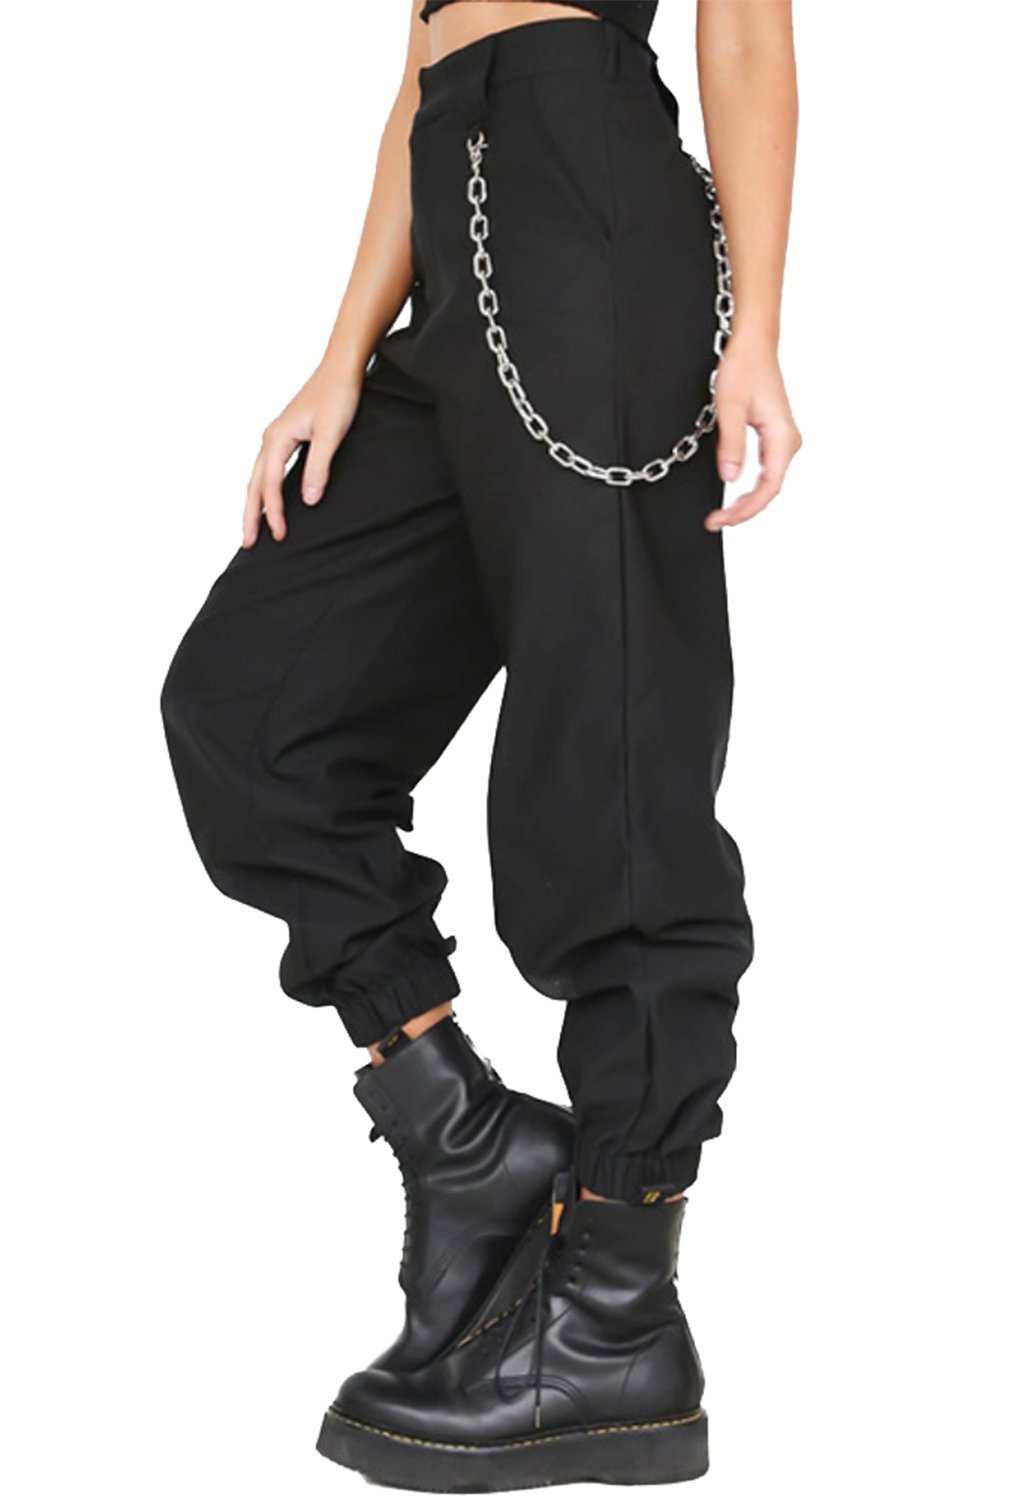 MNLYBABY High Waist Solid Harem Trousers Streetwear Punk Cargo Pants Capris for Women Size M (Black)